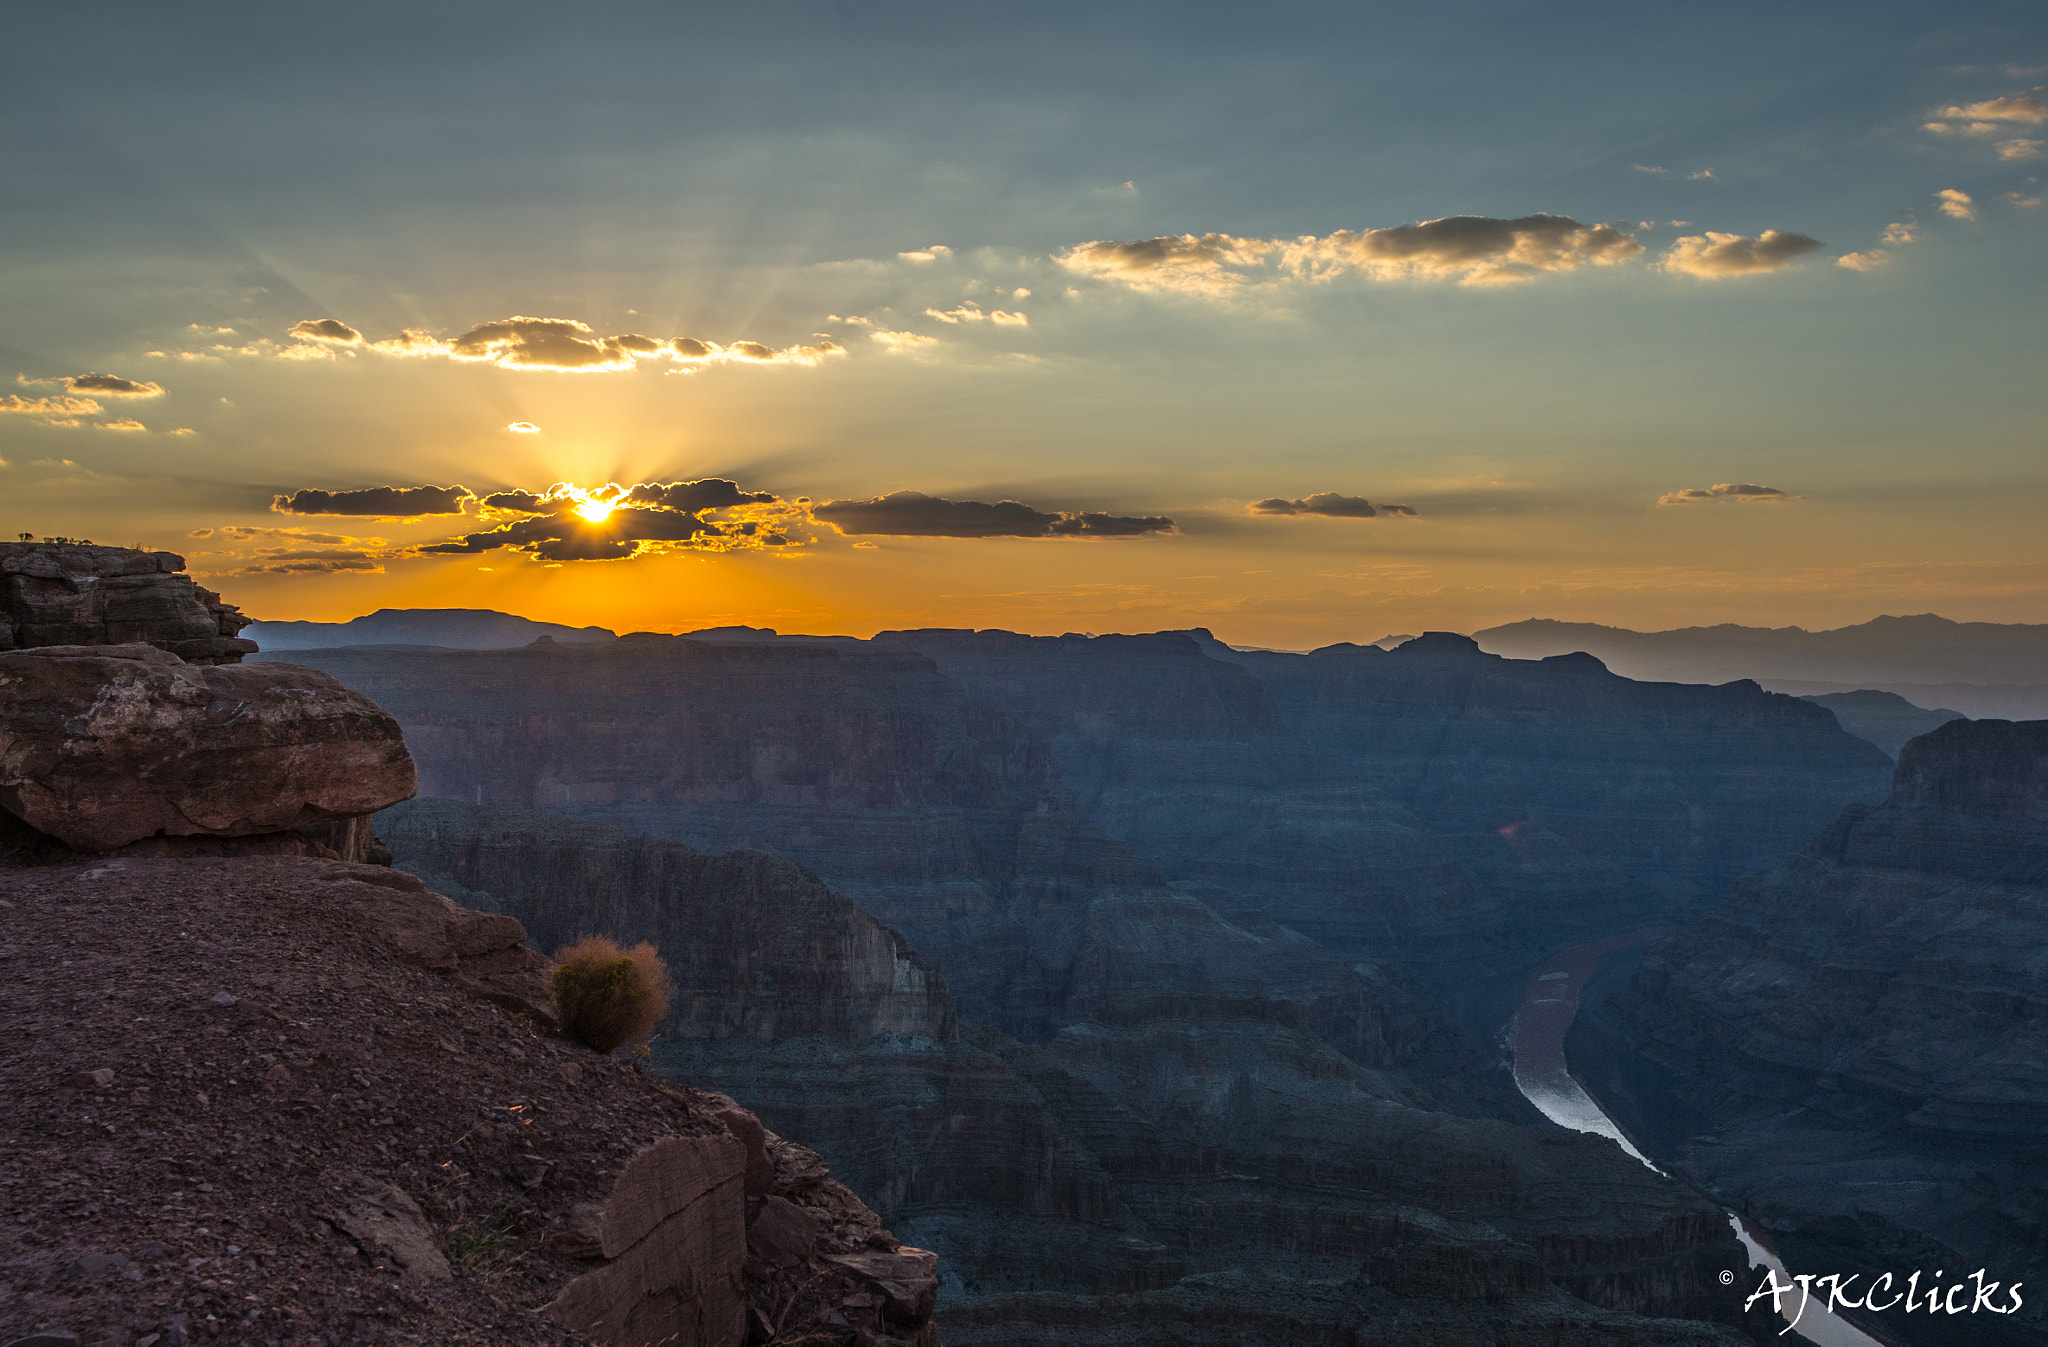 Photograph Wonders of Grand Canyon-Colorado River - Druing Sun Set by AJK Clicks on 500px